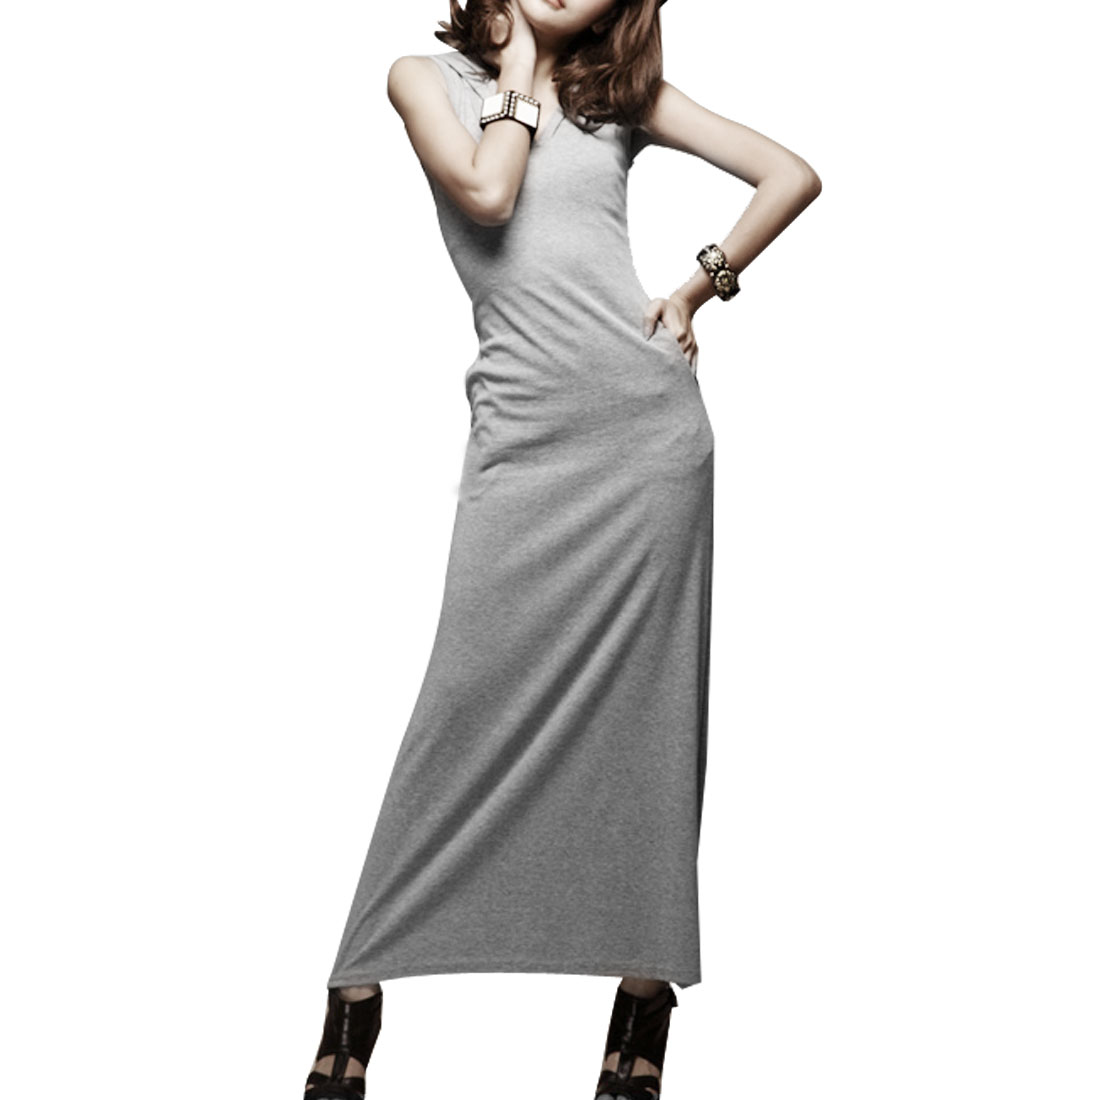 Woman Pure Gray Backless Summer Leisure Long Dress XS